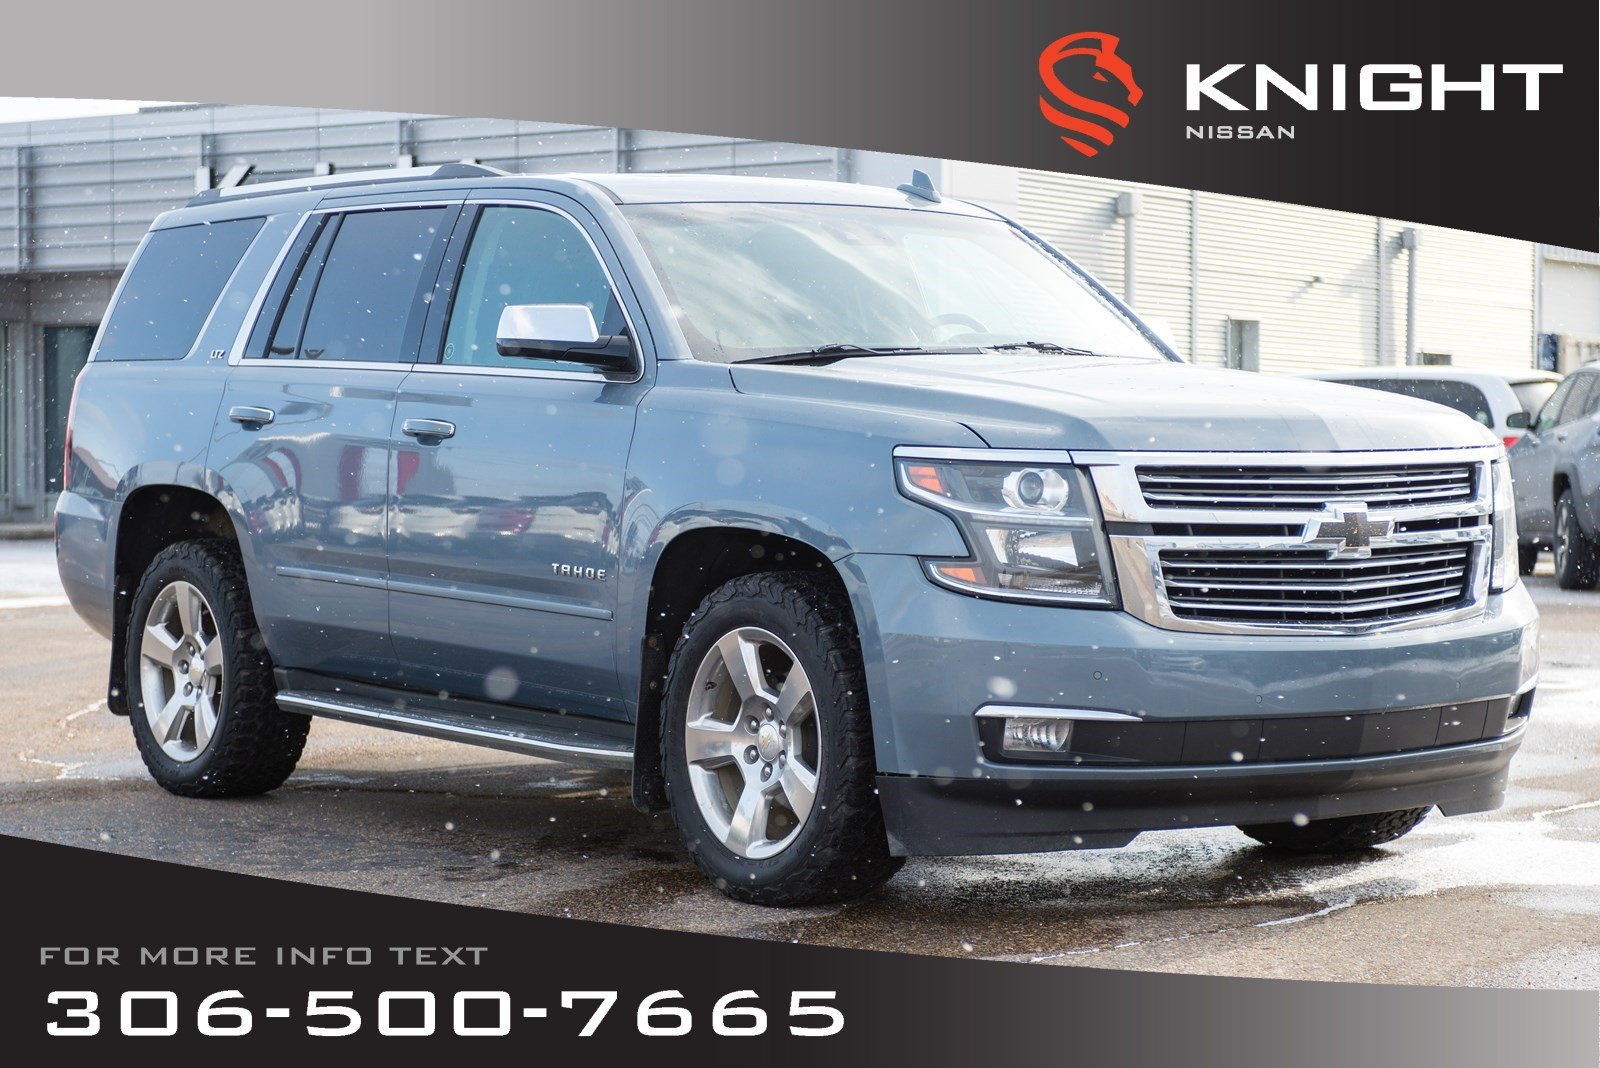 Pre-Owned 2015 Chevrolet Tahoe LTZ | Leather | Heated & Cooled Seats | 3rd Row Seating |